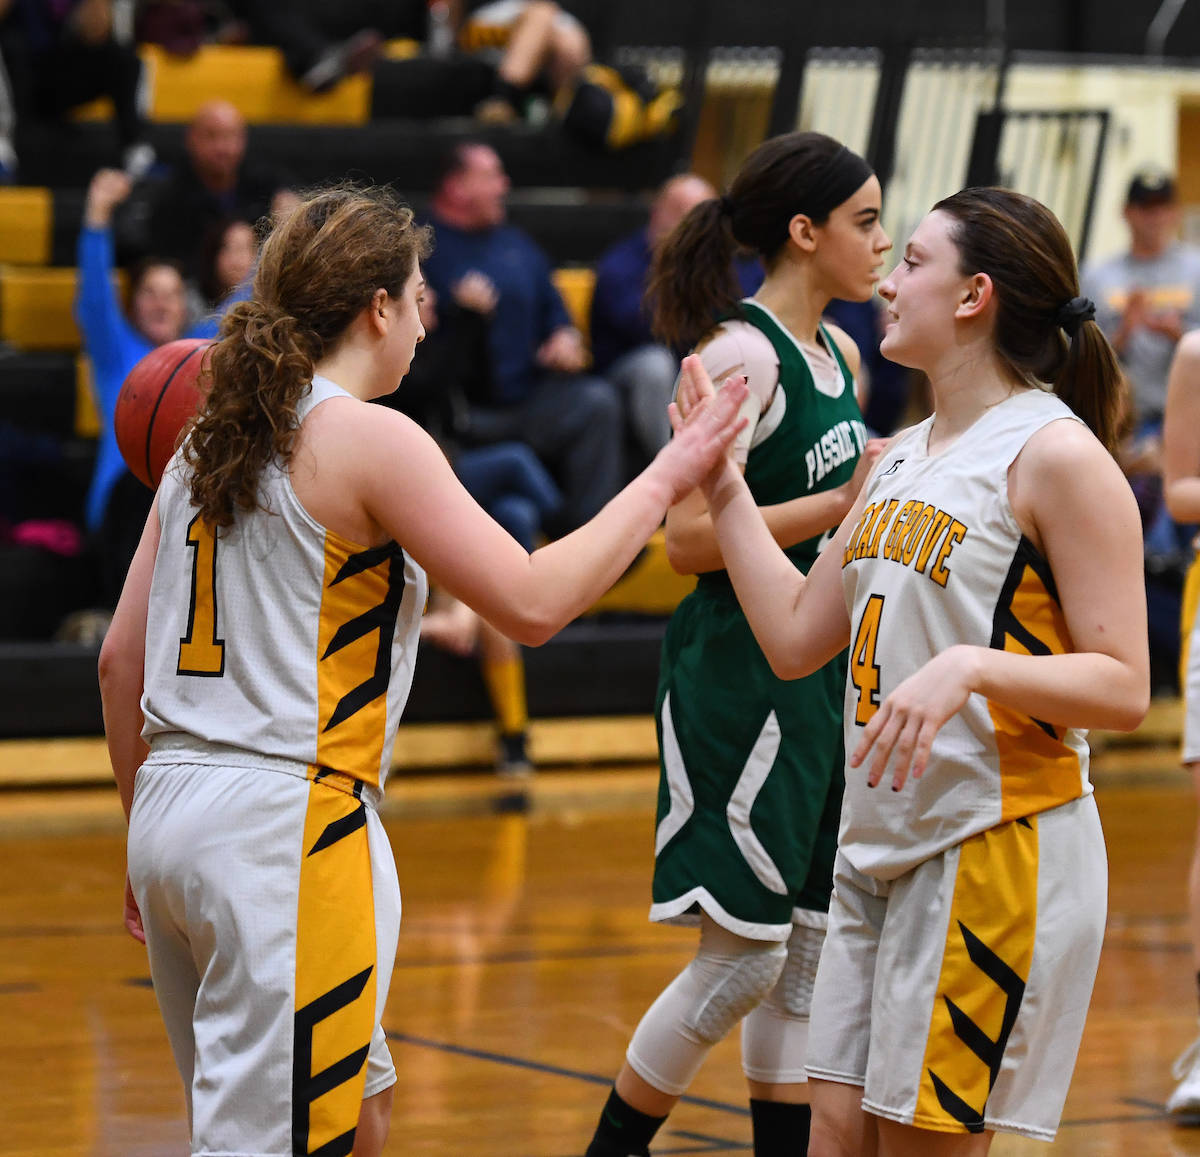 valley grove girls Great valley kennett octorara  unionville ended archbishop carroll's one-year reign as piaa class aaa girls  tweets by @chesmontsports ches-mont news.